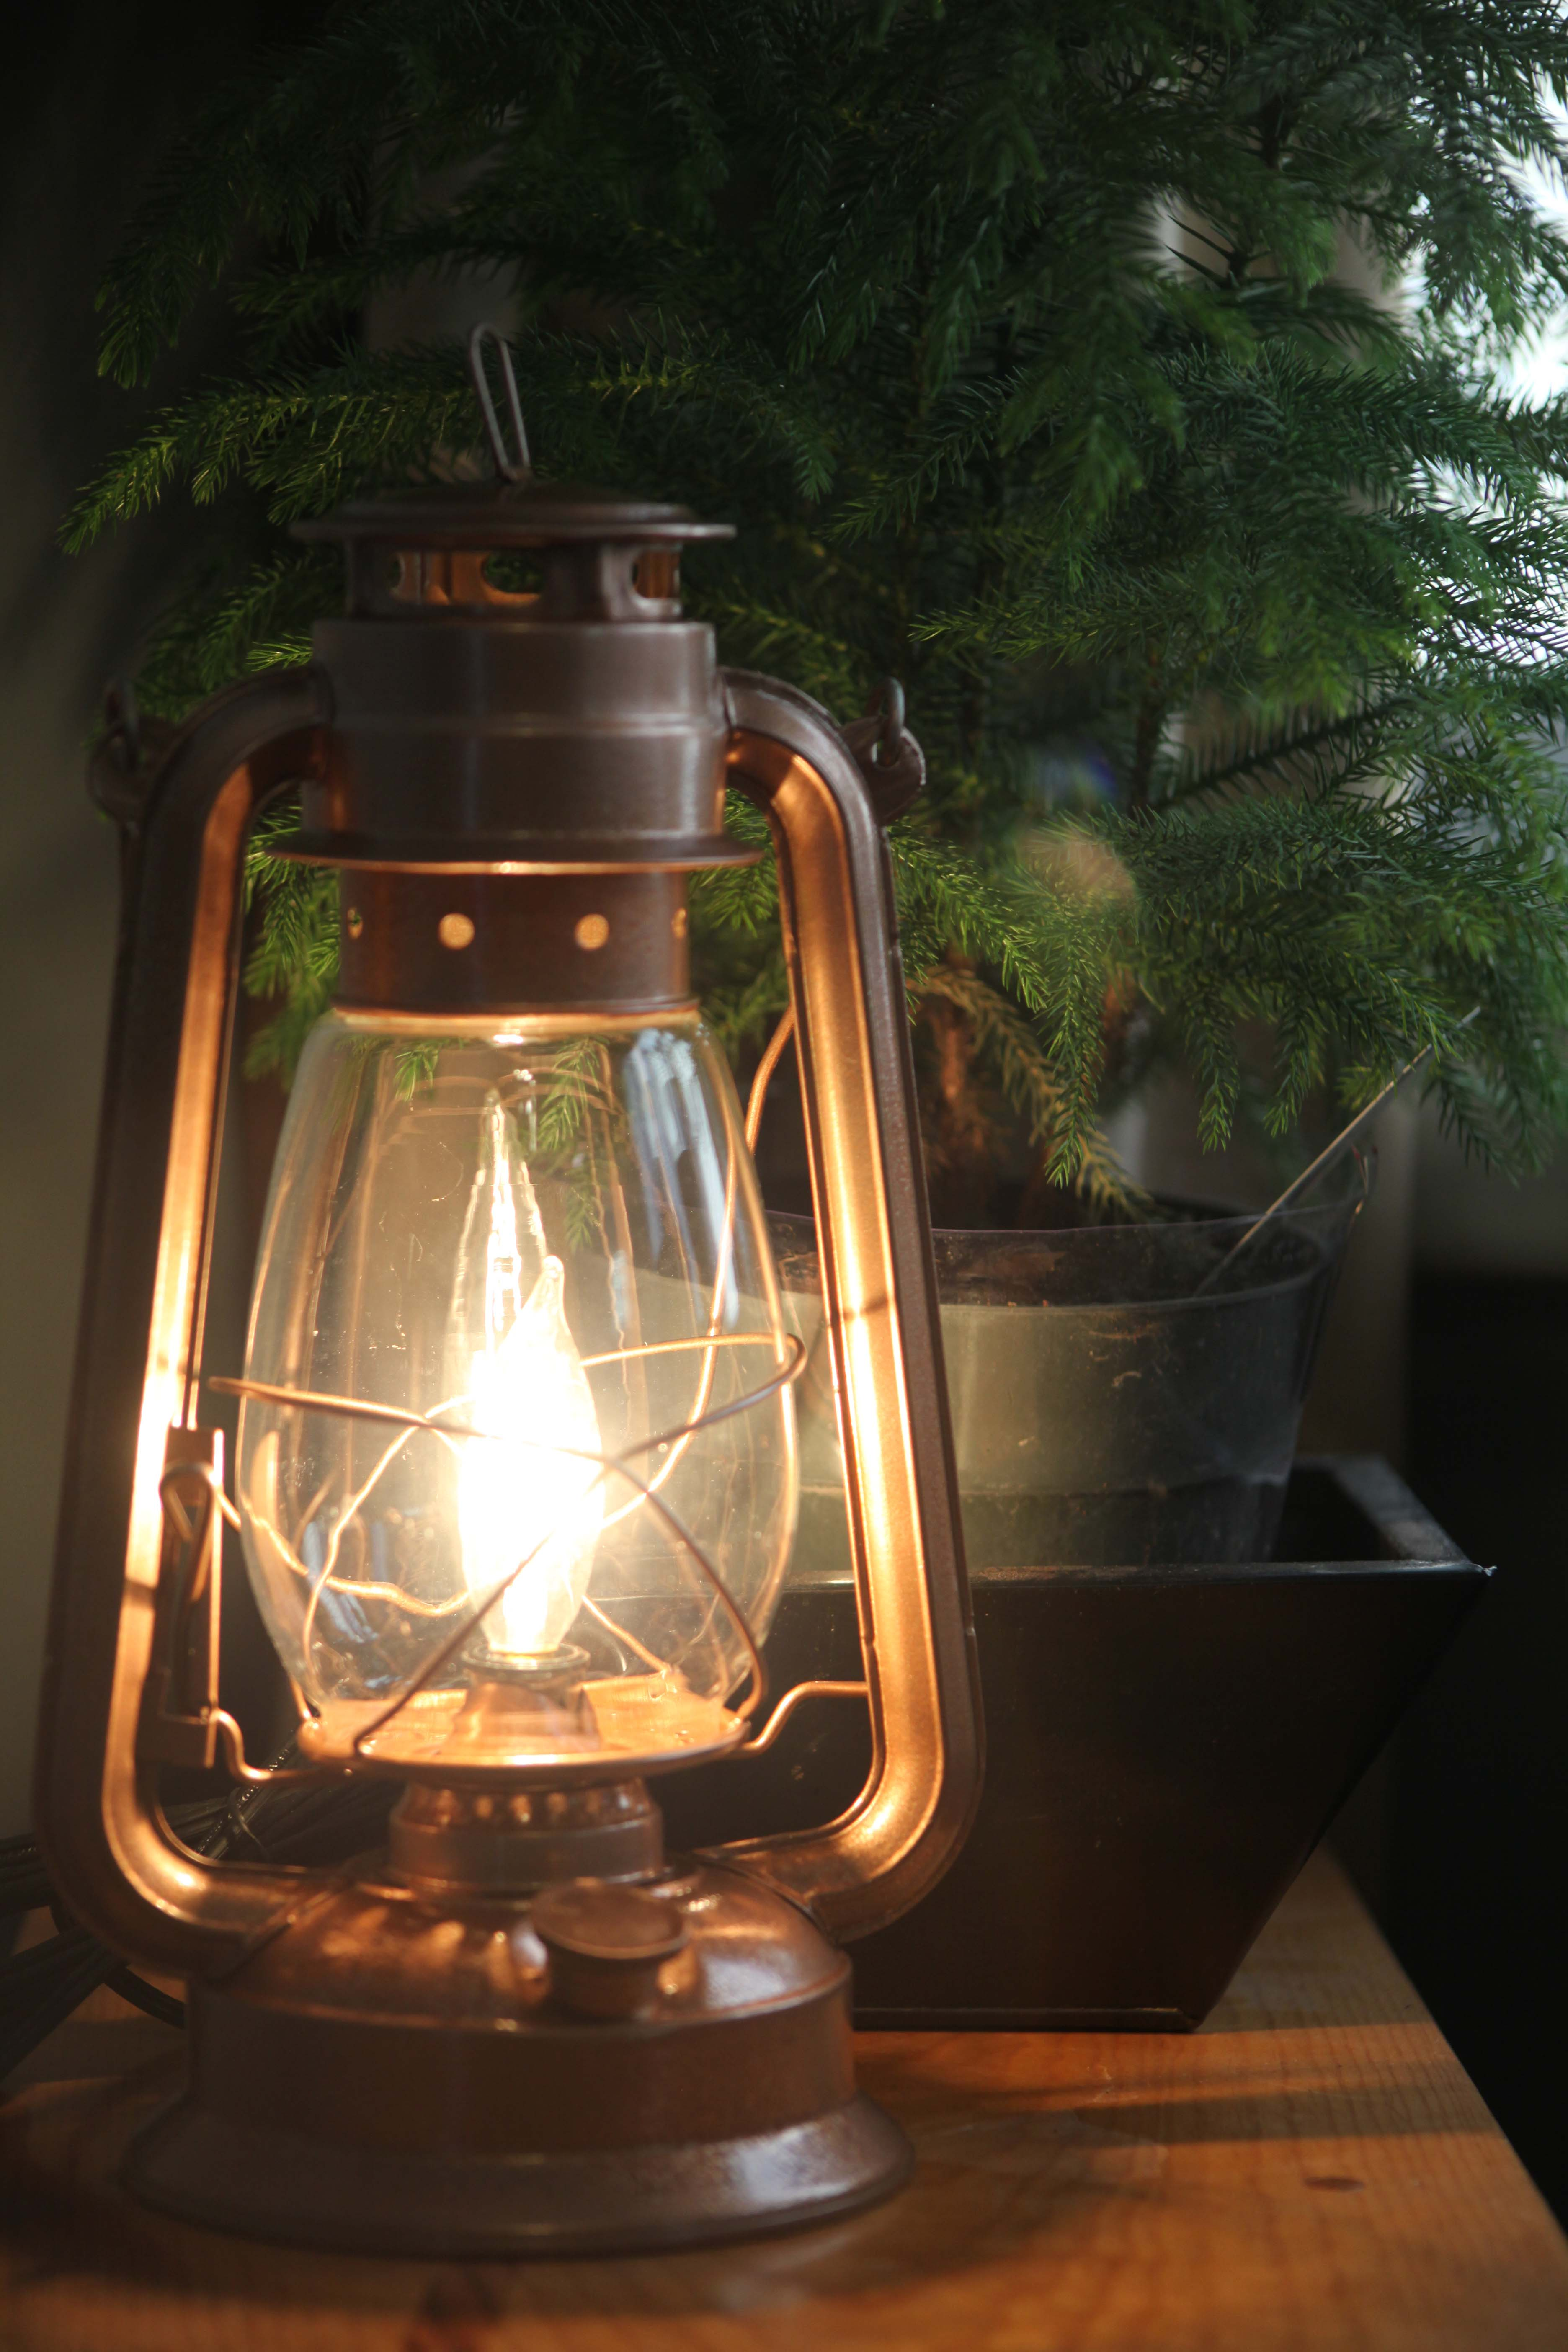 Electric Lantern Table Lamp, COPPER LANTERN, Electric ...